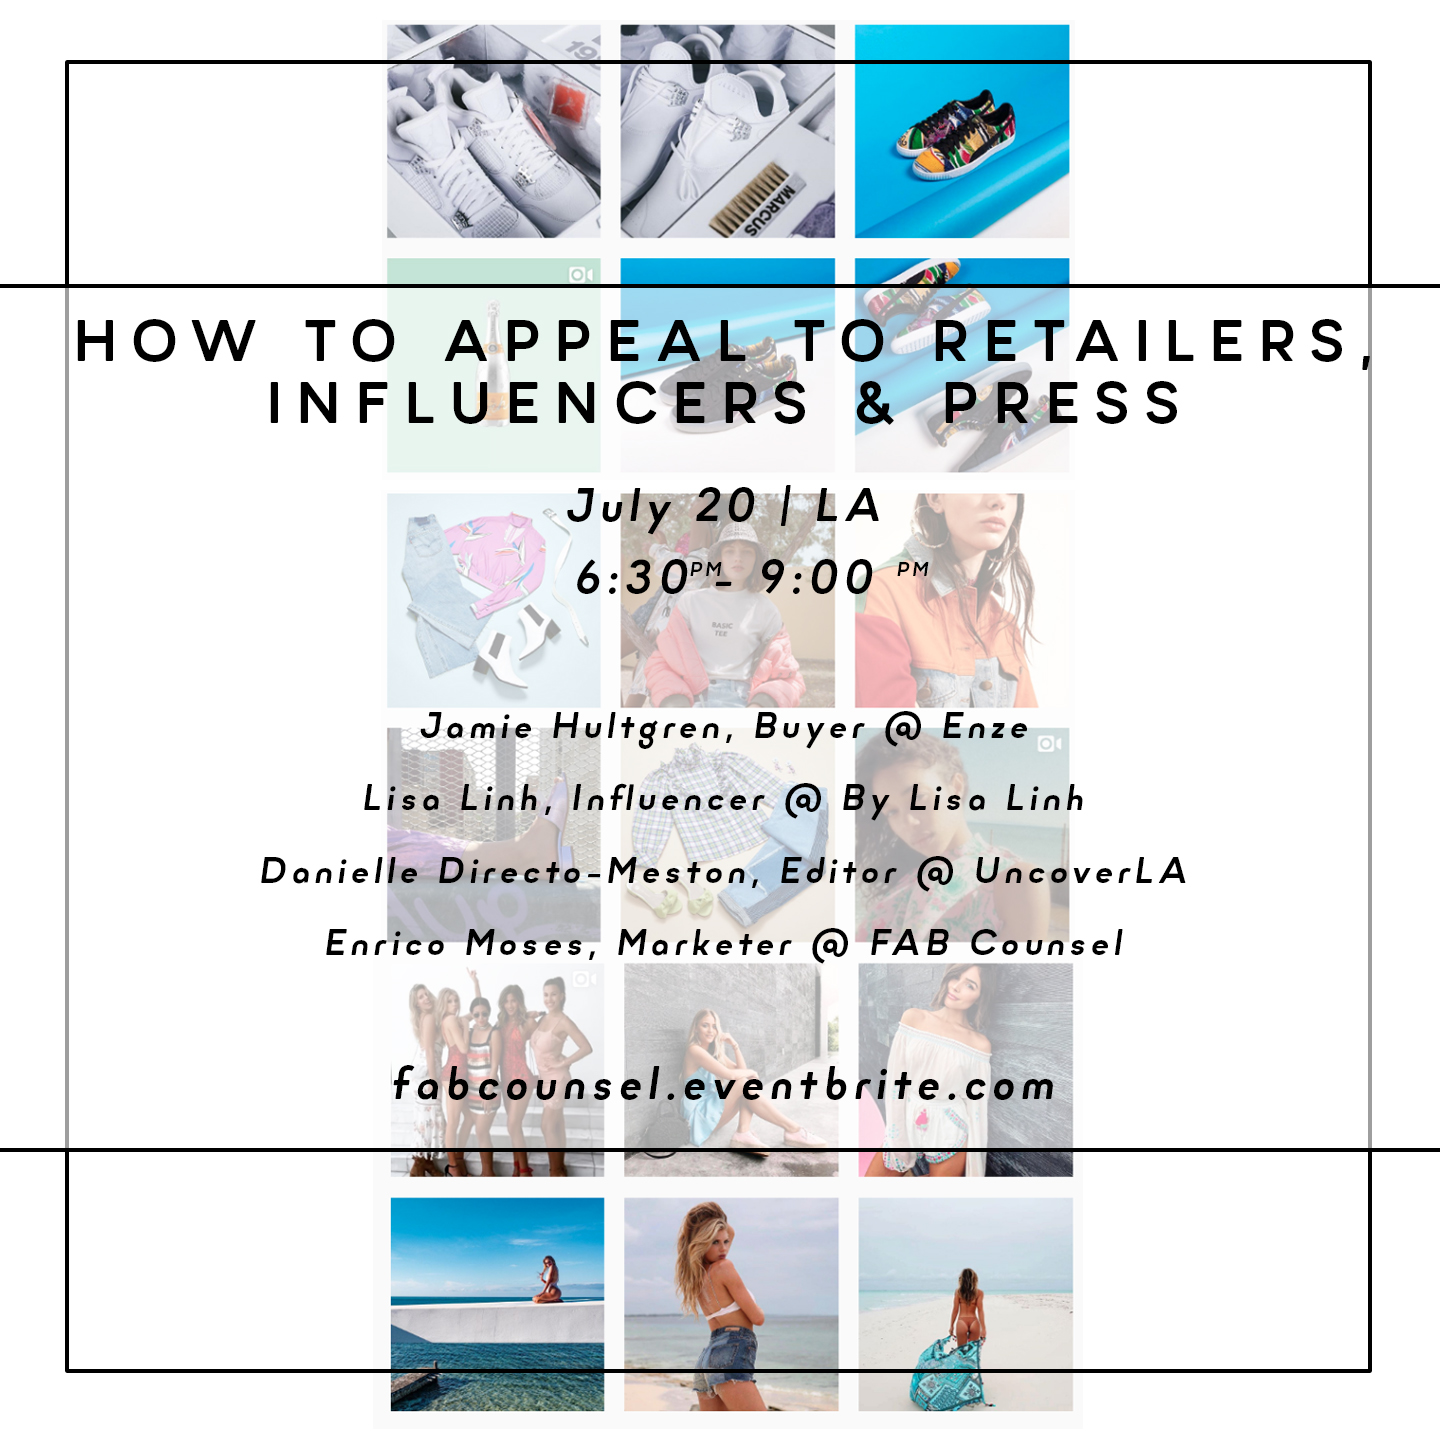 How To Appeal To Retailers, Influencers, & Press